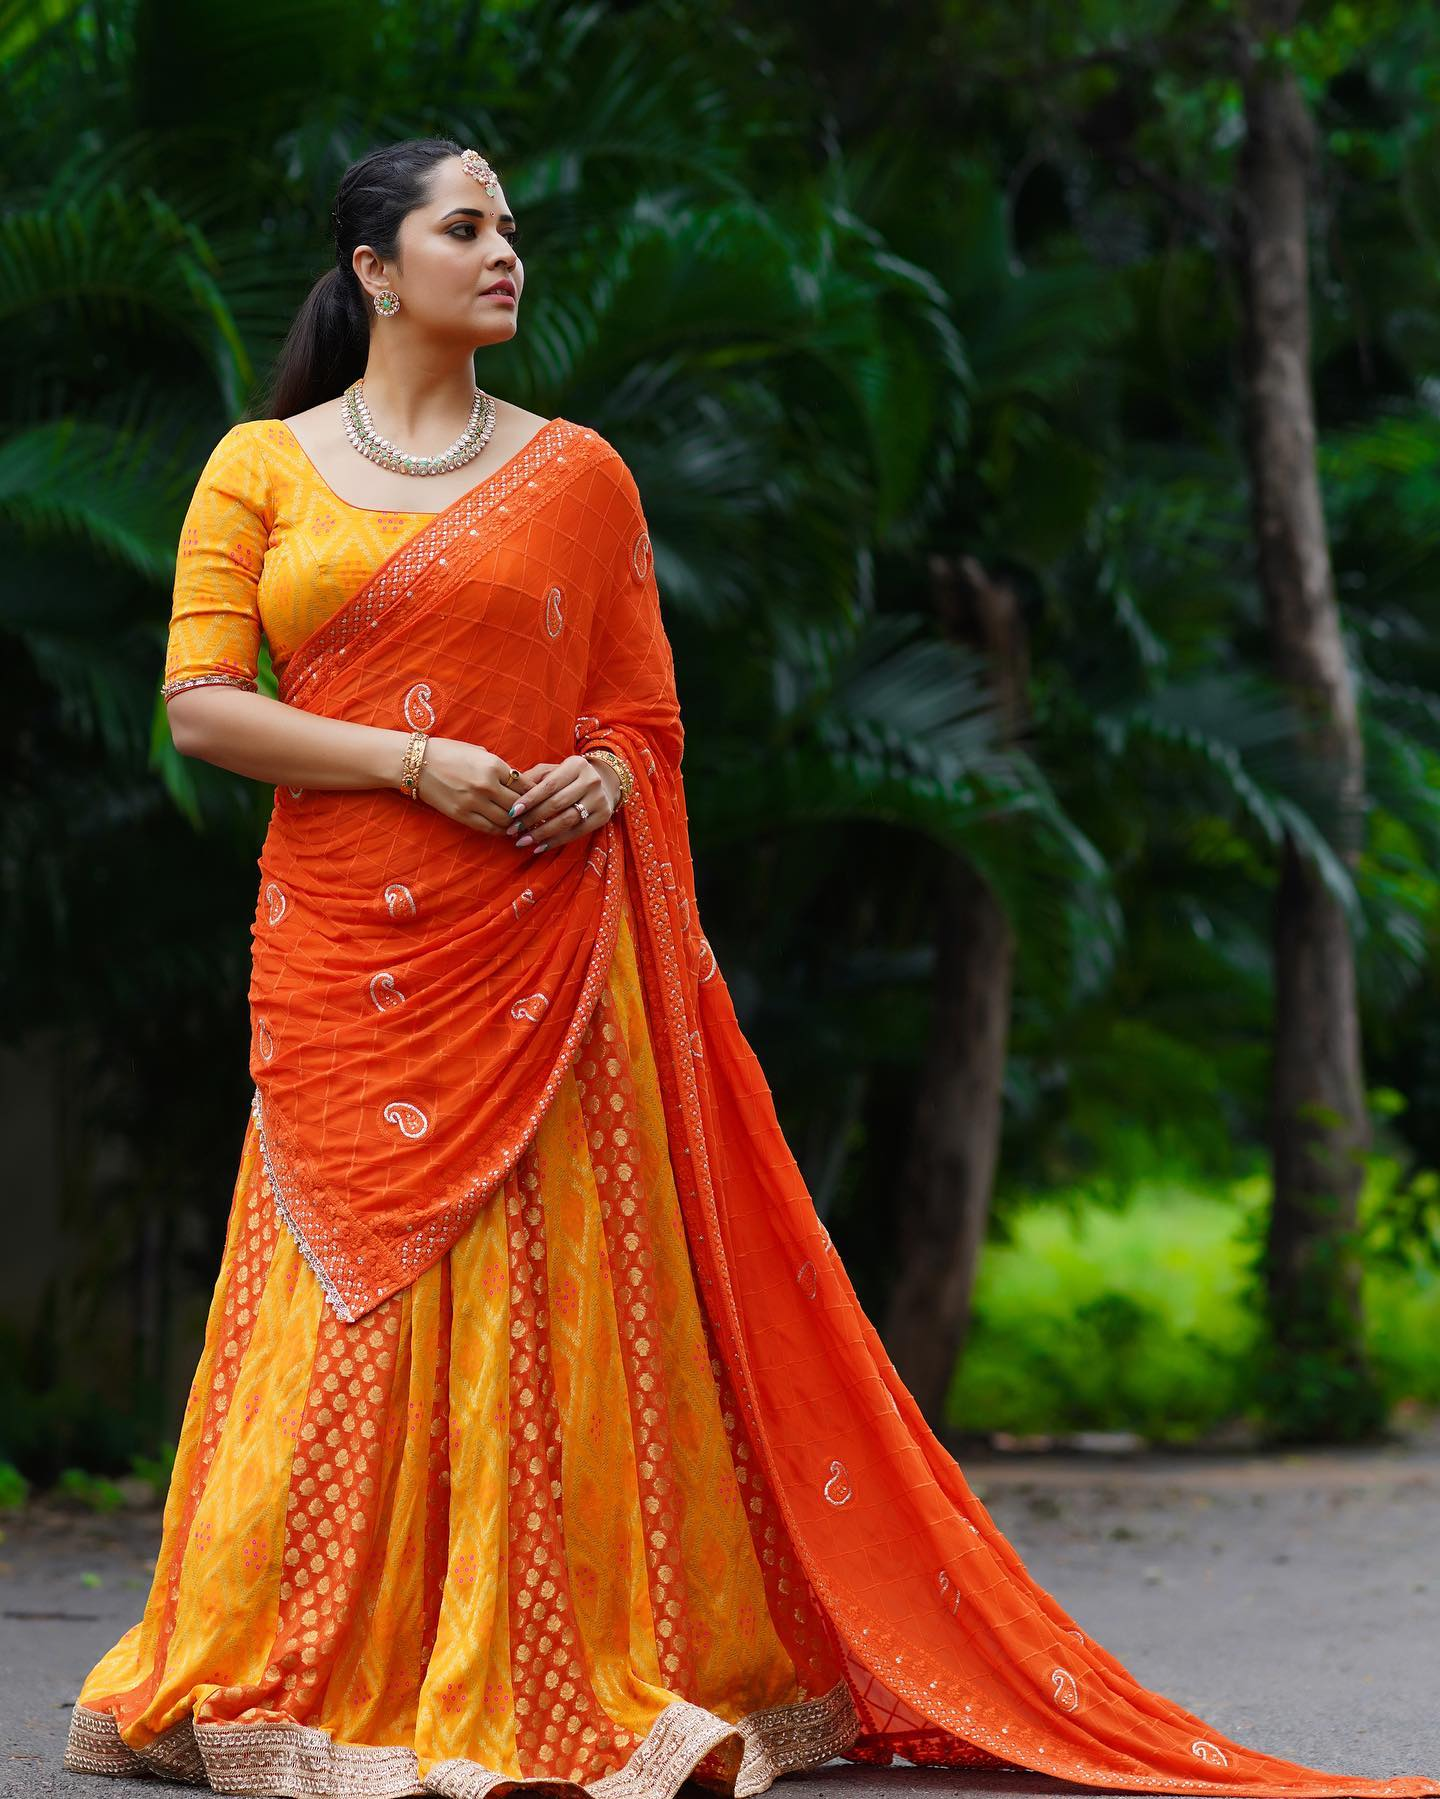 Beautiful actress and anchor Anasuya Bardwaj in yellow and orange color combination halfsaree. Outfit and Styling by Gauri Naidu. 2021-10-15